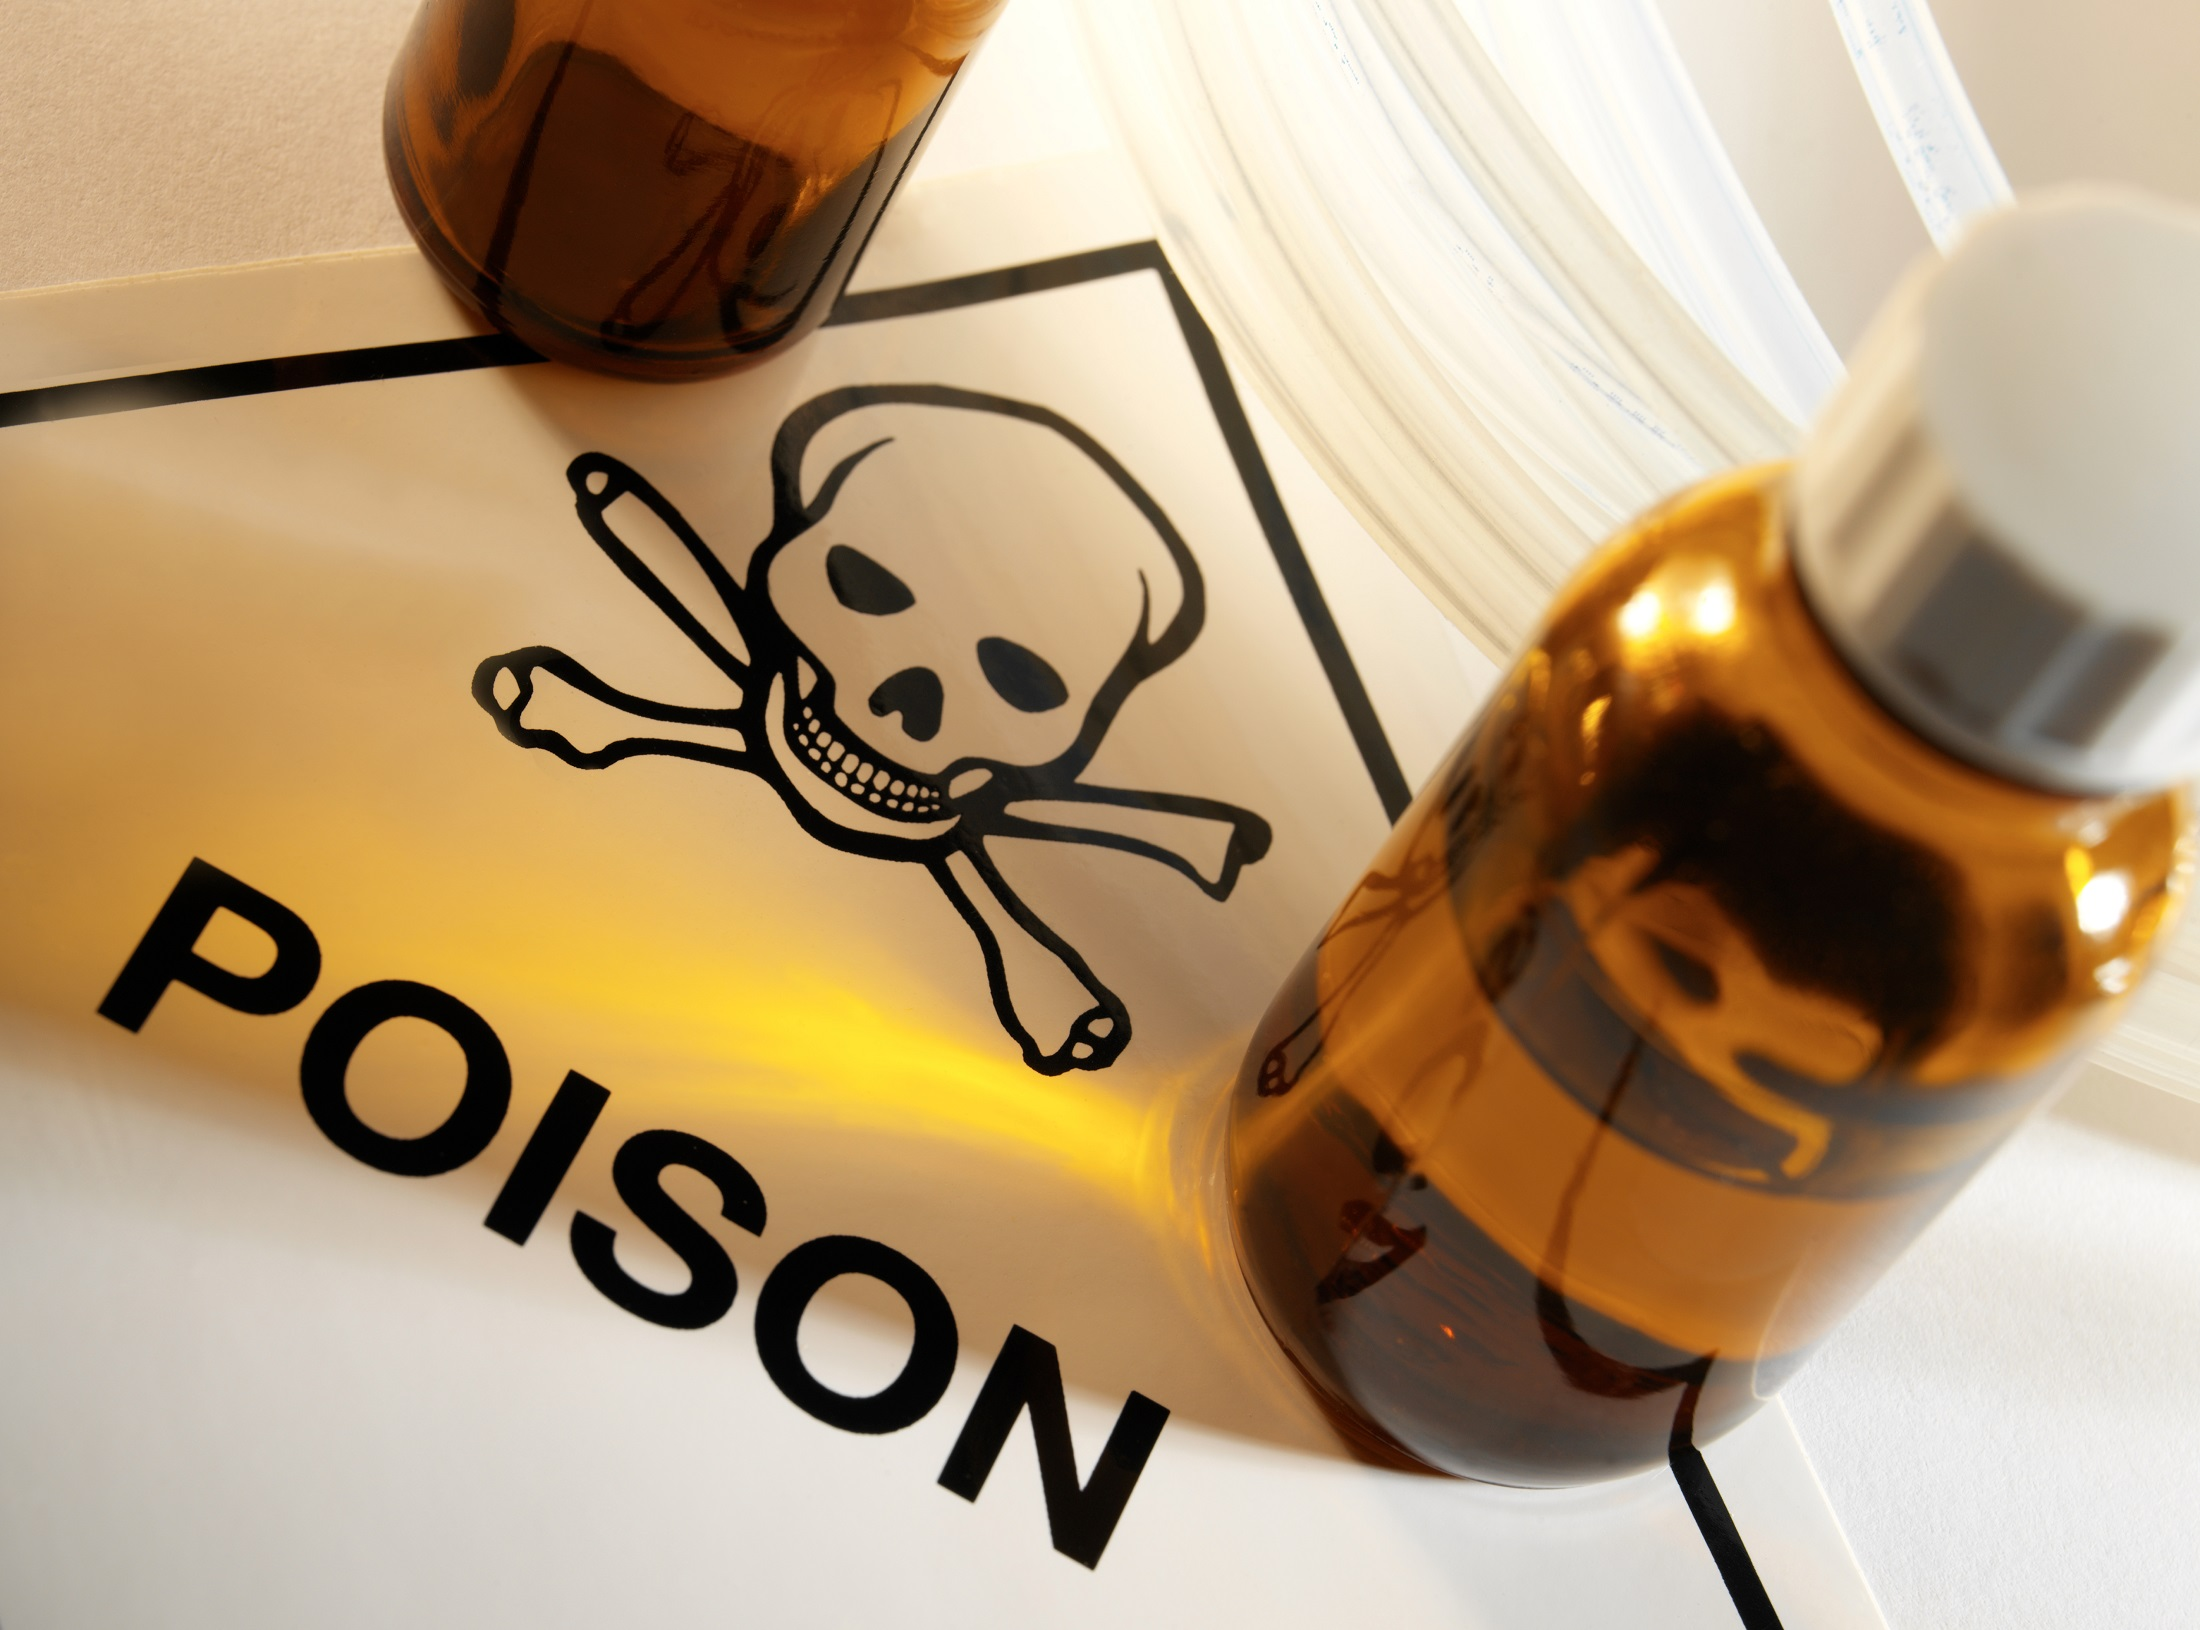 Using poisons and solvents in the workplace